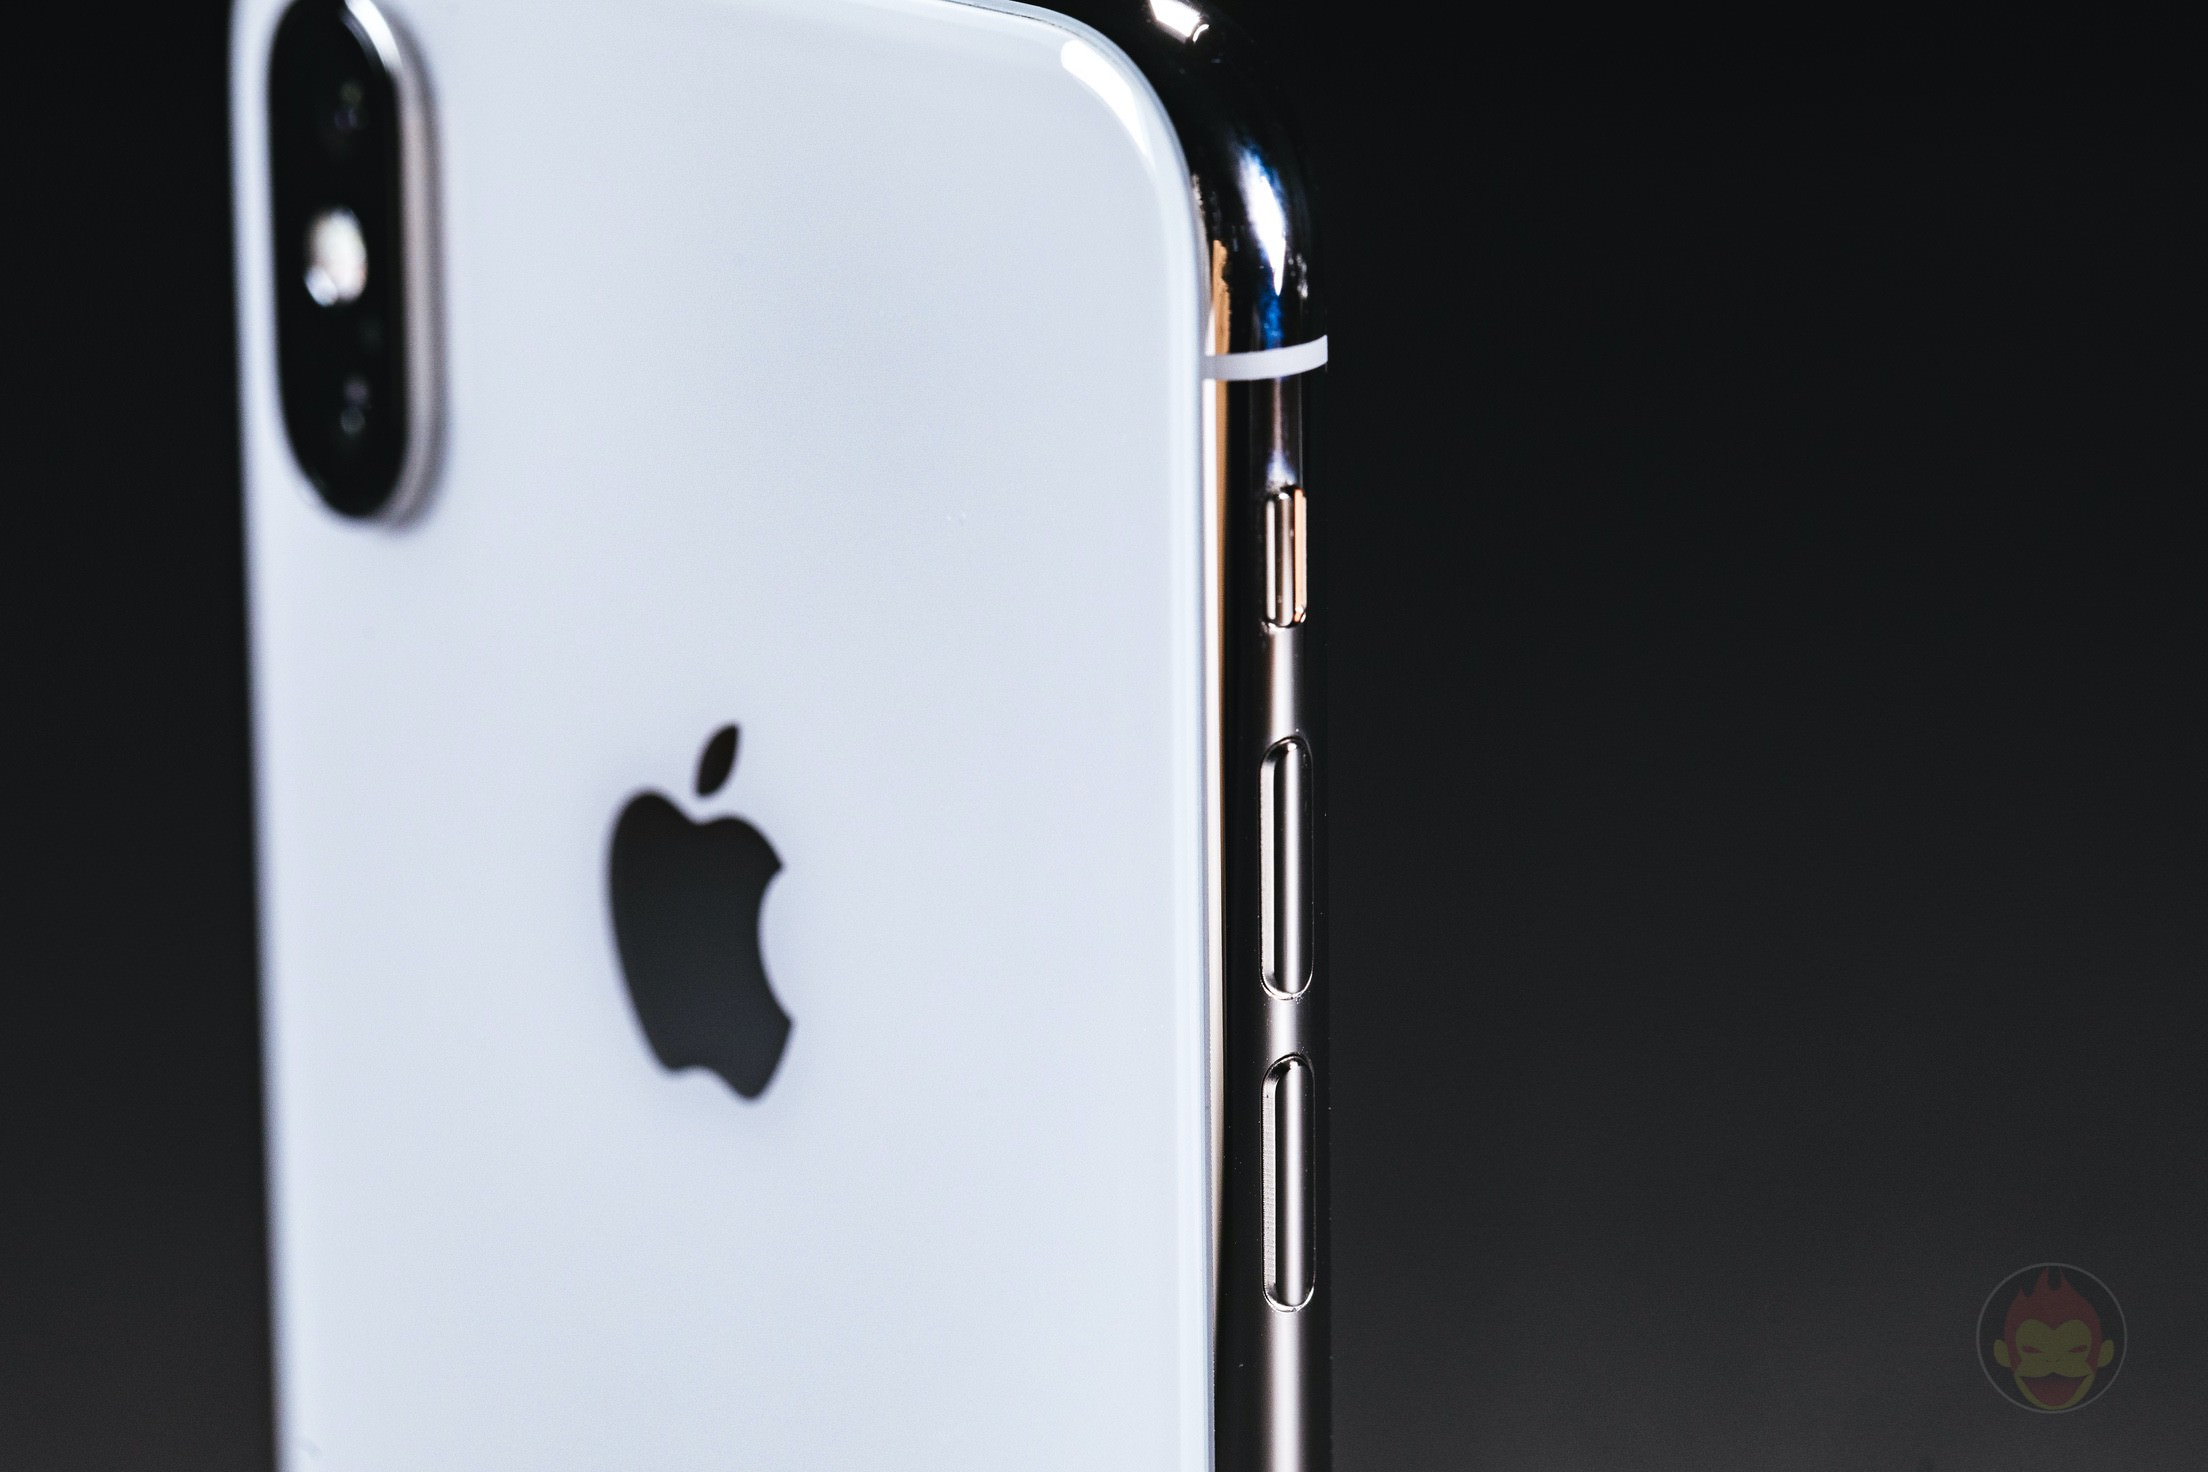 iPhone-X-Silver-Review-31.jpg